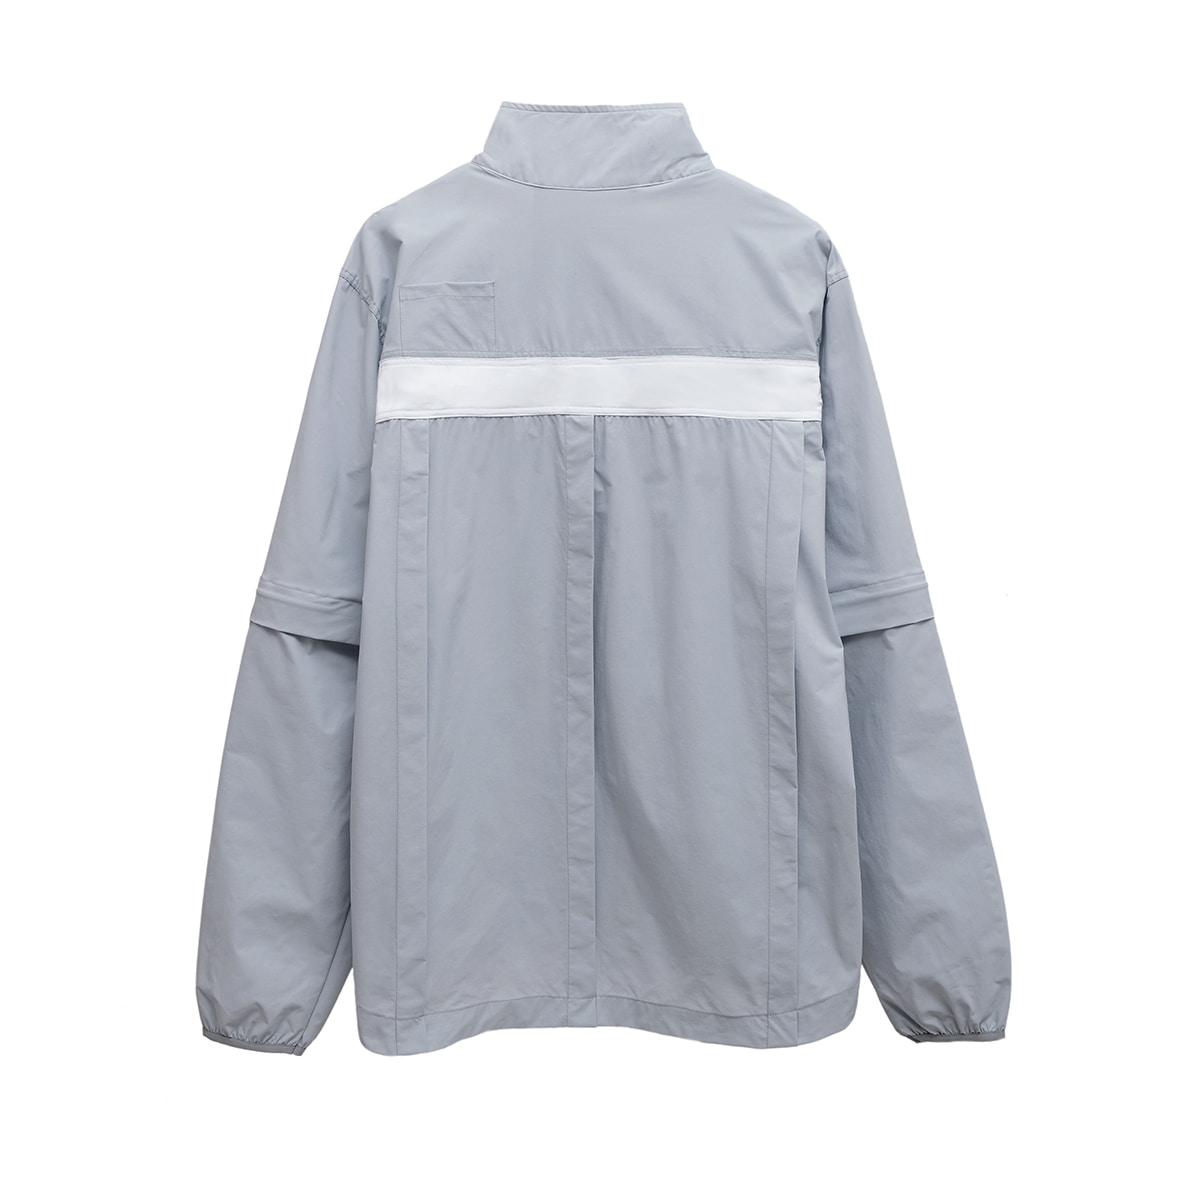 V.S Detachable Zip Jacket (gray)